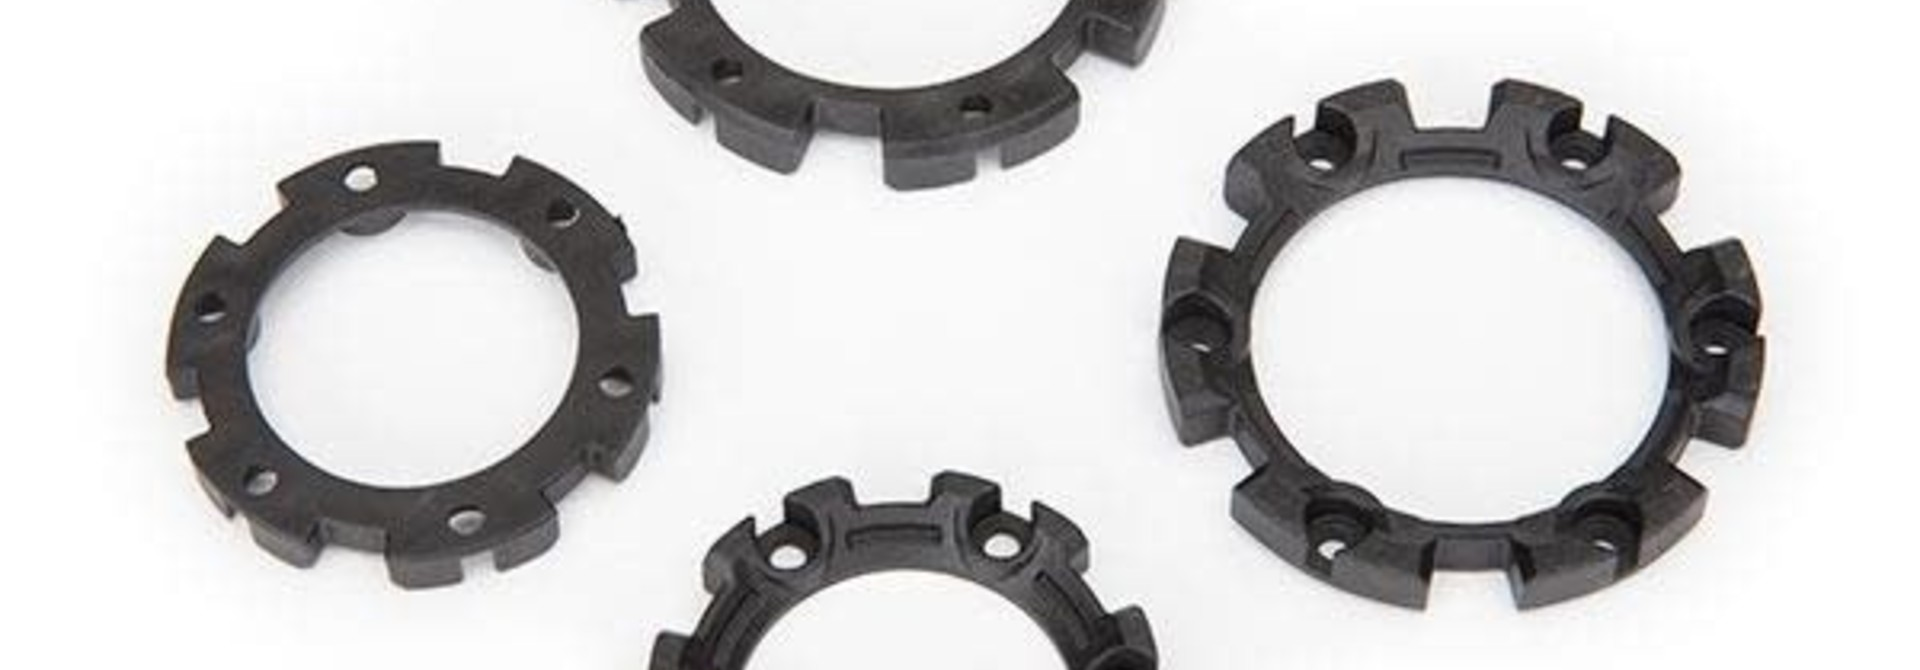 Bearing retainers, inner (2), outer (2), TRX8889